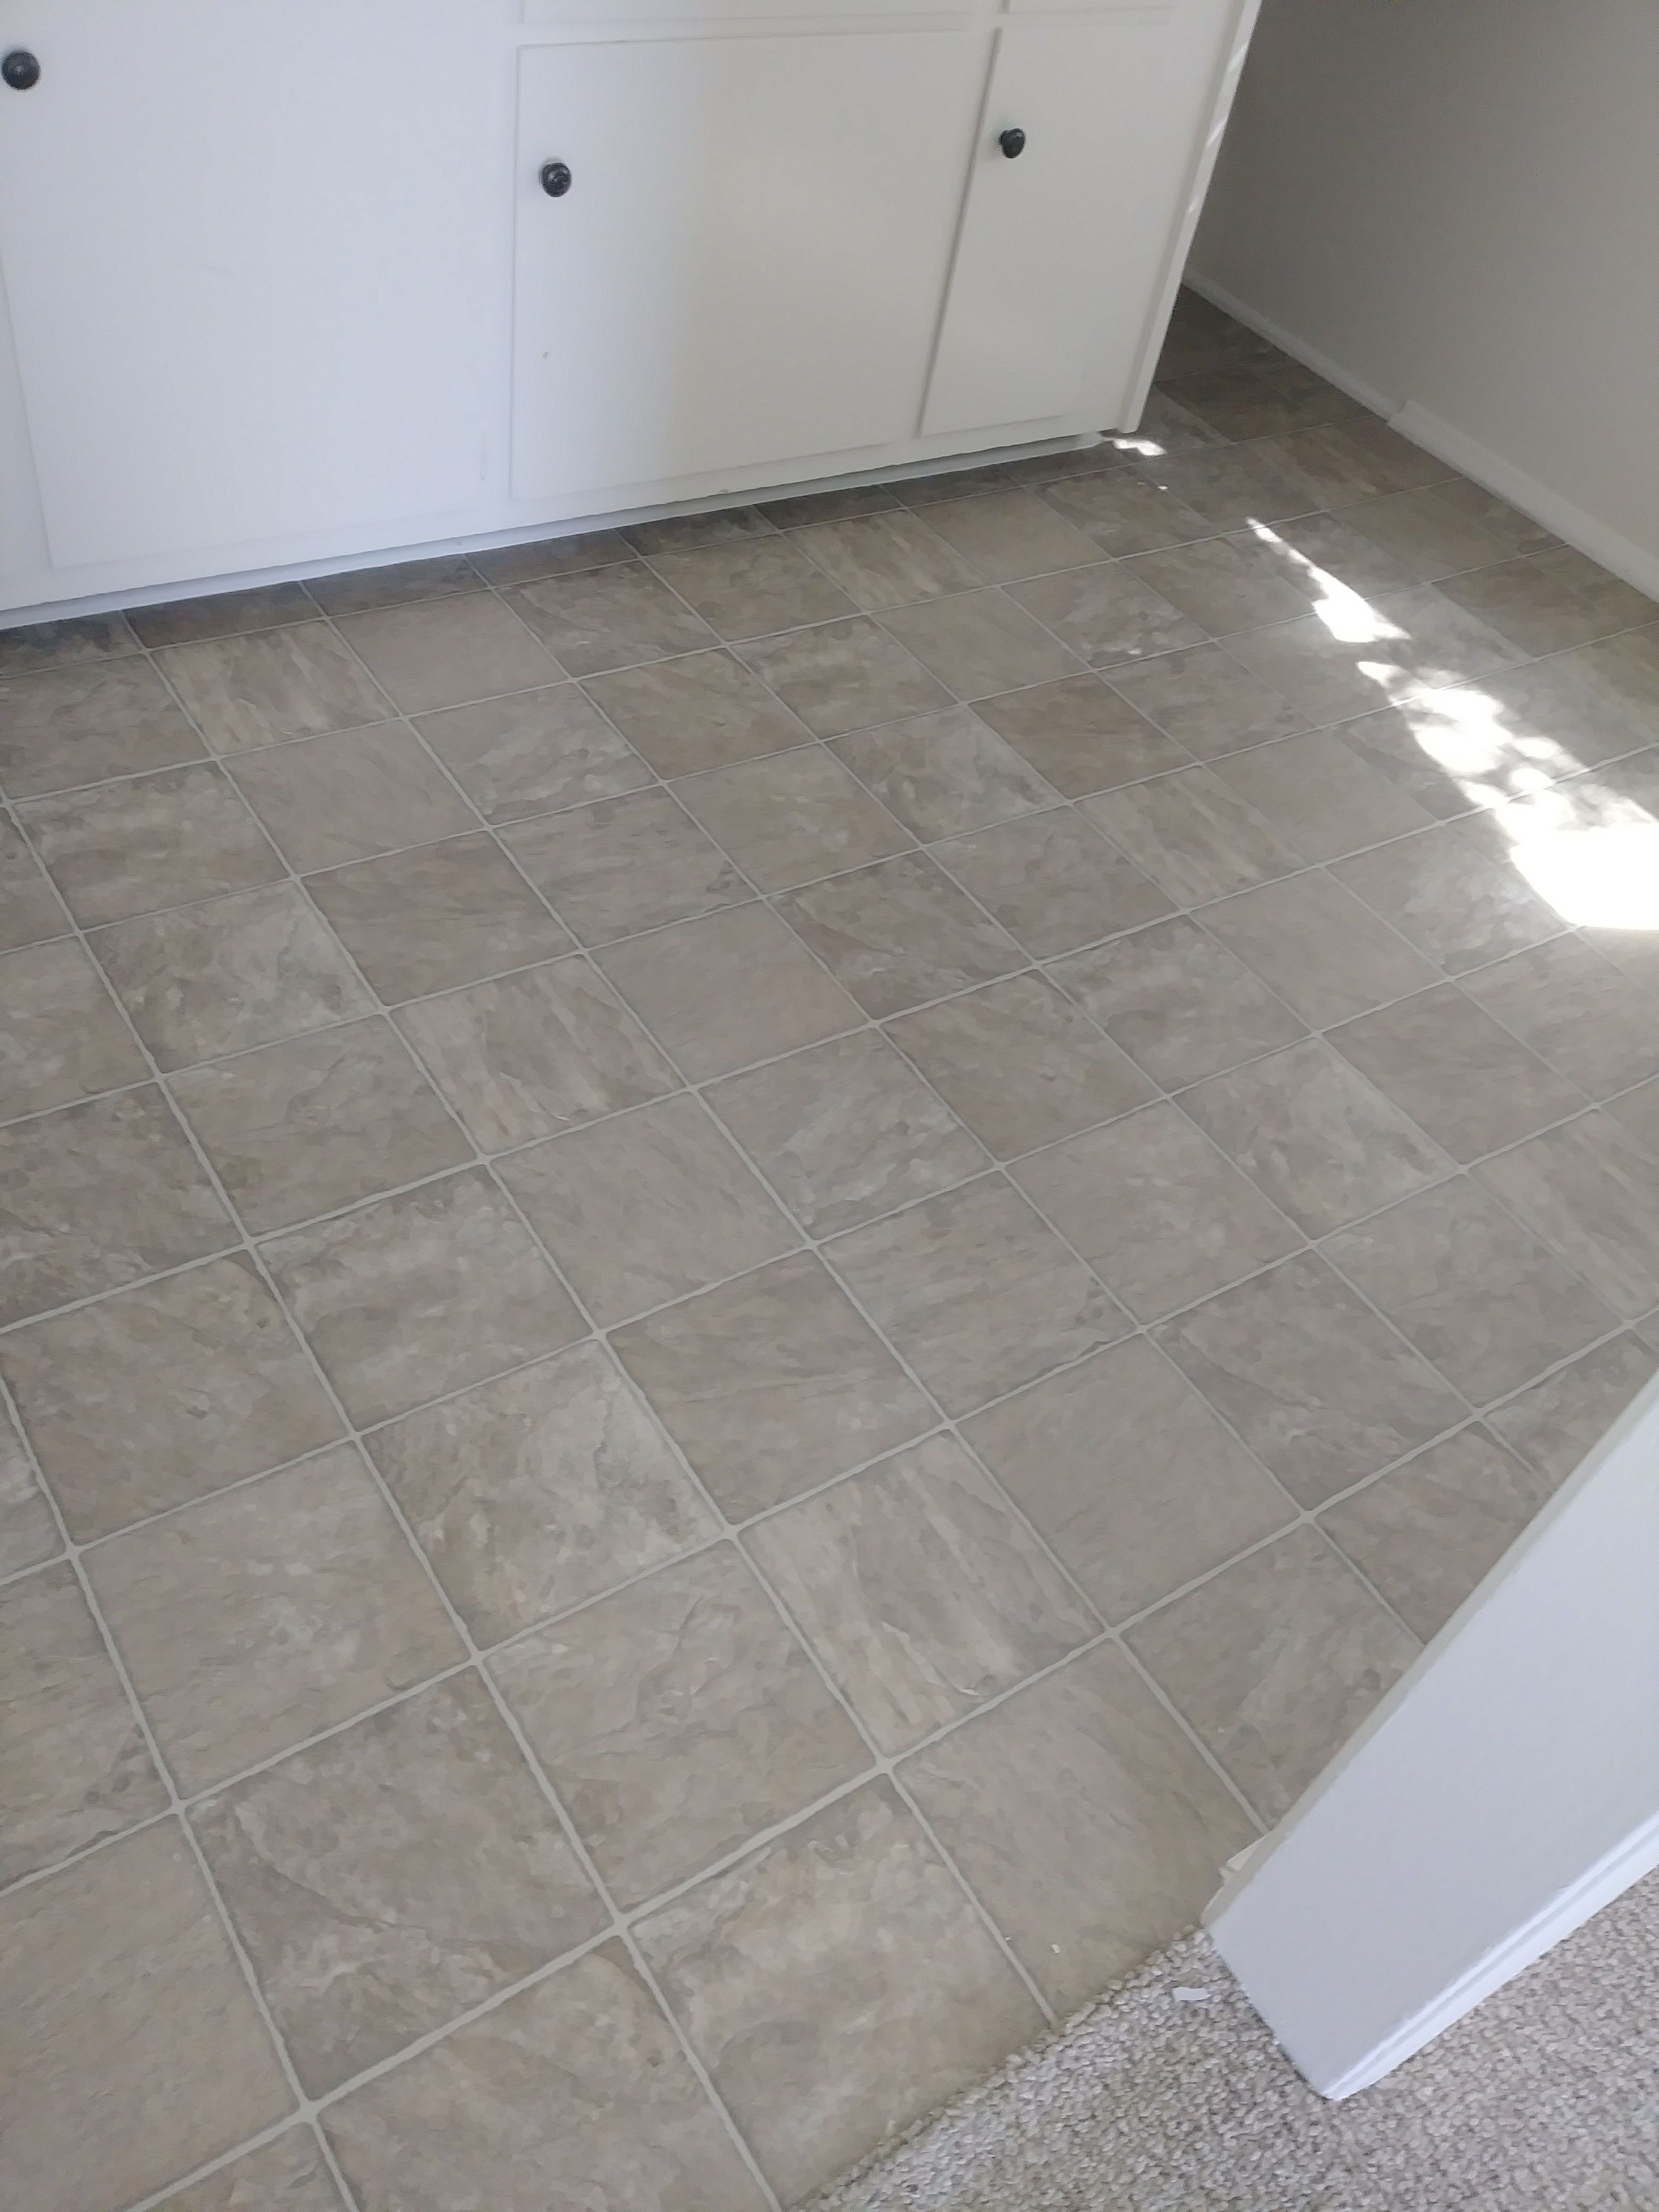 Check Out This Sheet Vinyl Flooring Installation Give Us A Call To - Estimate for tile floor installation